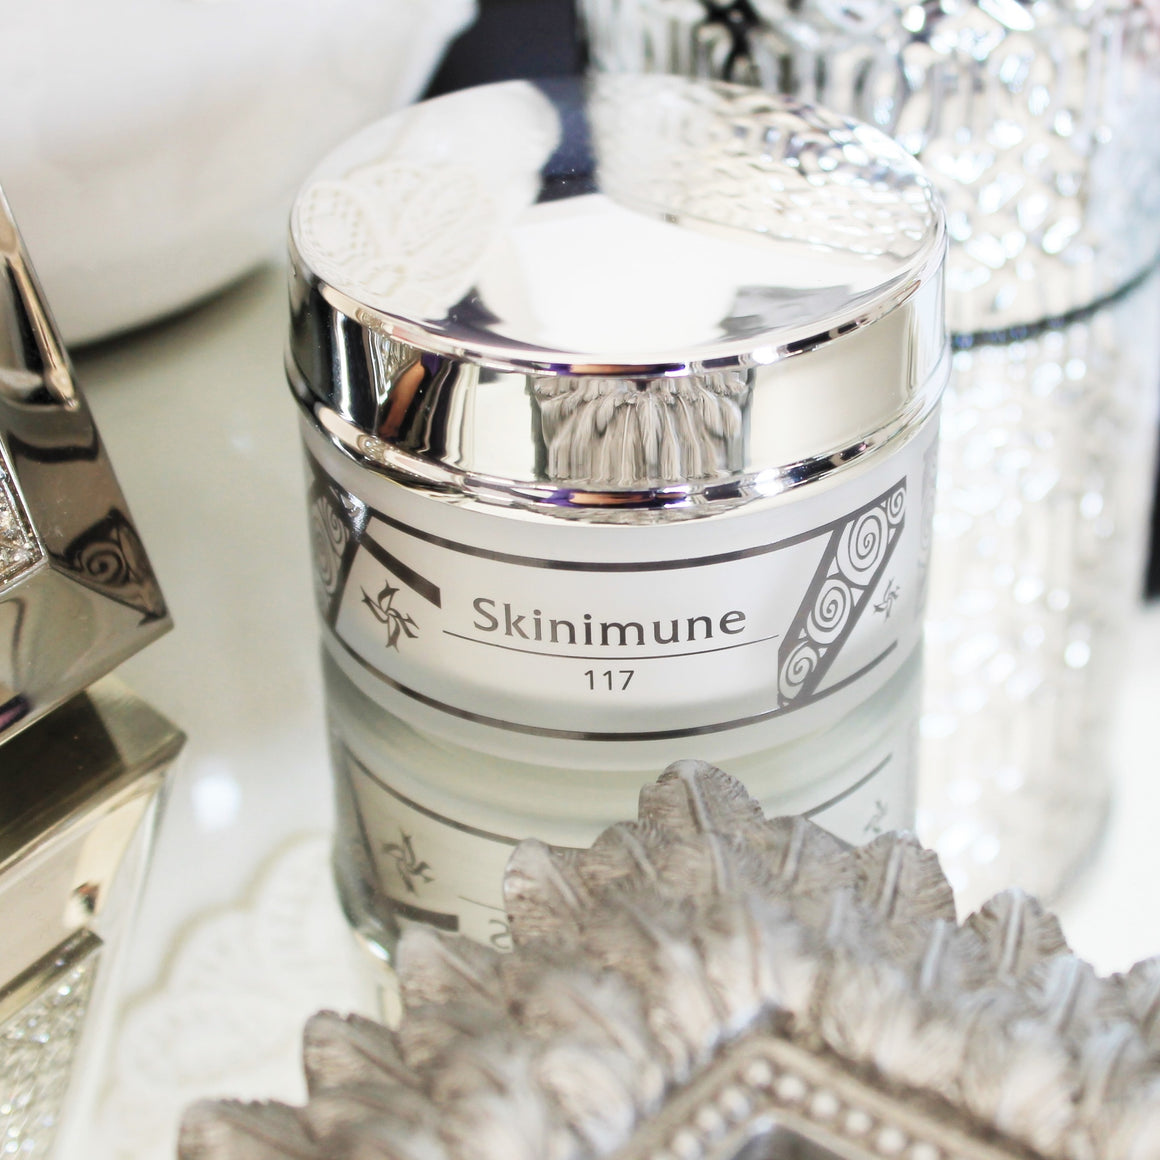 Skinimune takes care of your skin from the inside out, infusing it with intense regeneration.⁣ ⁣ Discover the exclusivity of IMMUNOCOSMESI! Biologically active functional cosmetics made in Italy by Kalleis.